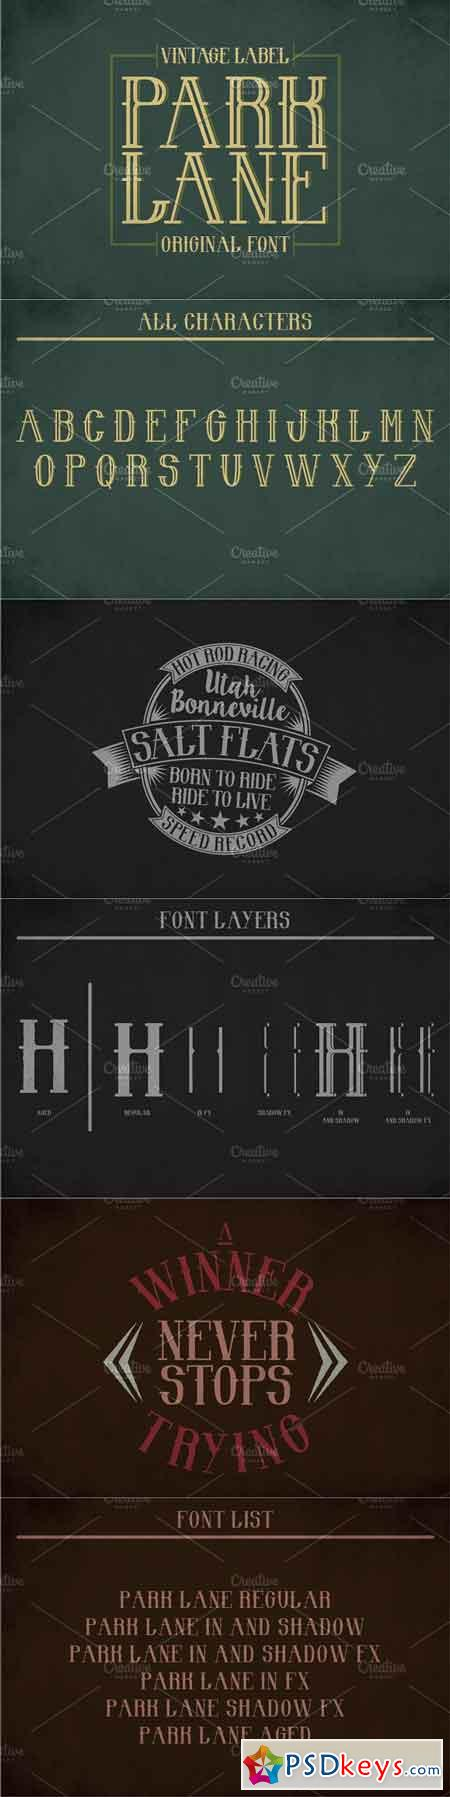 Park Lane Vintage Label Typeface 1722116